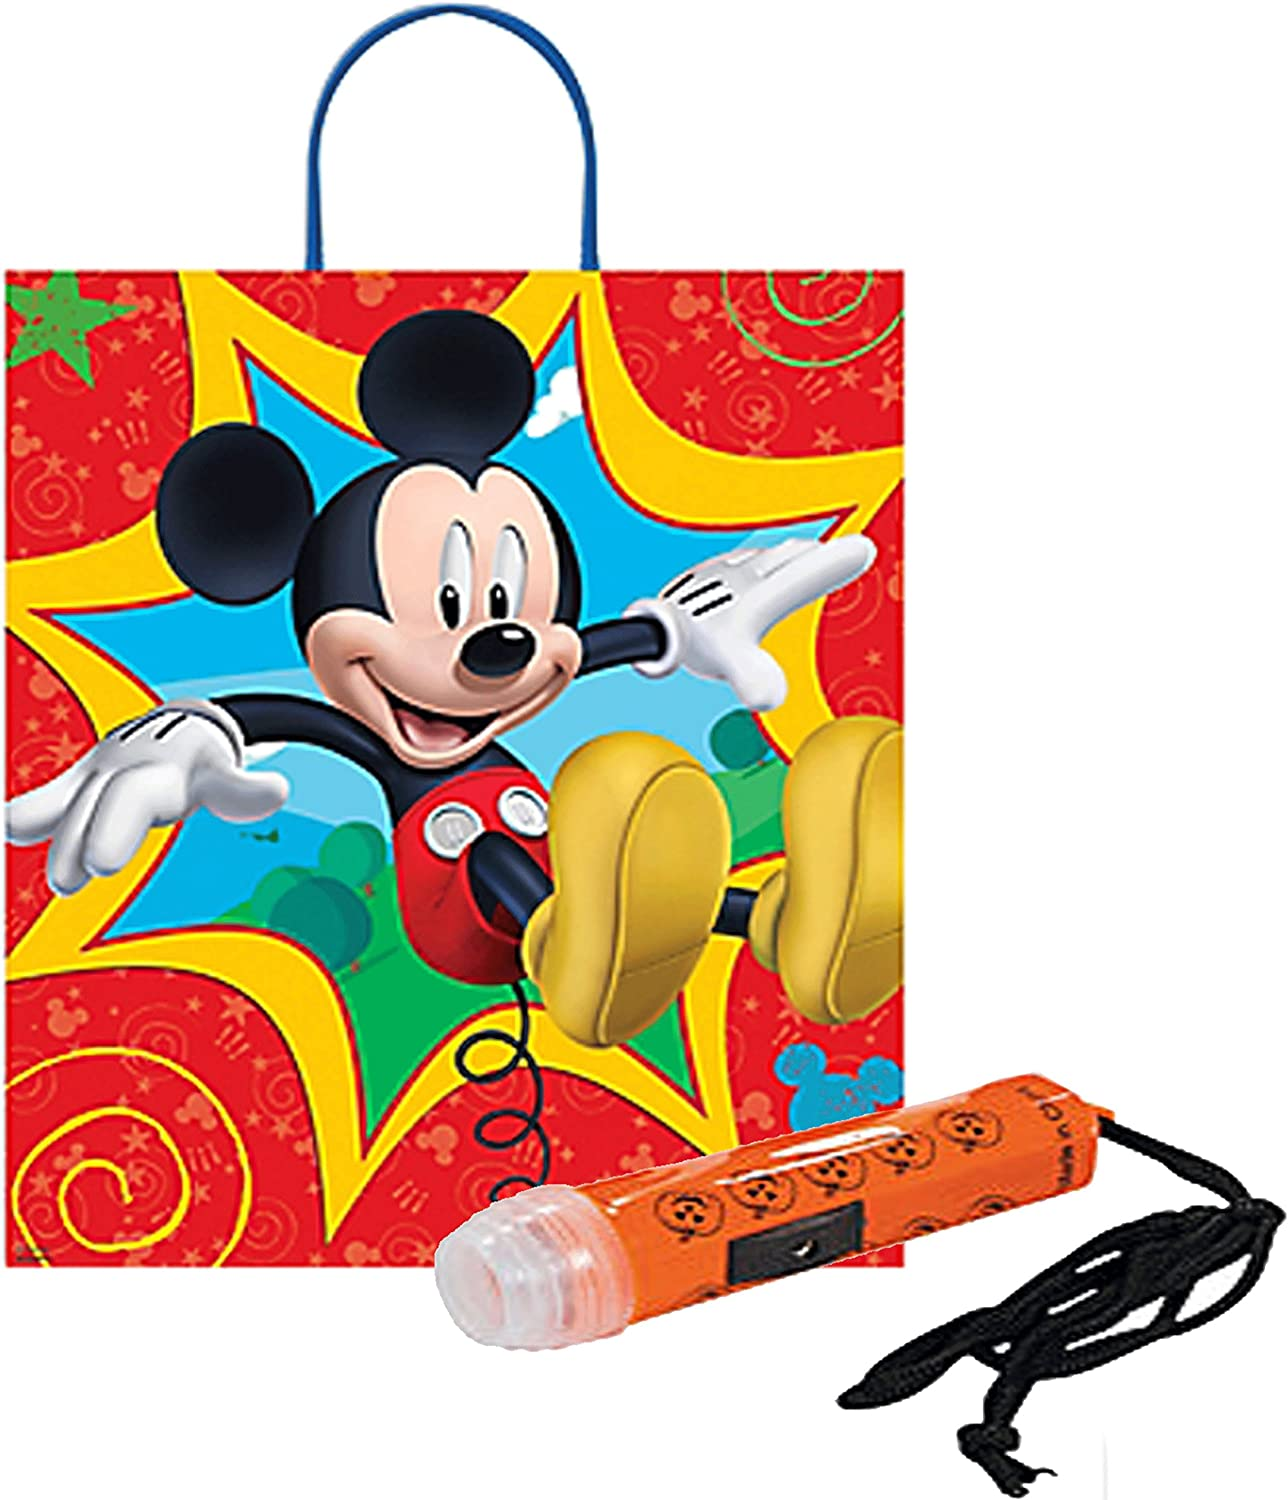 Spiderman Classic Novelty Trick or Treat Sack